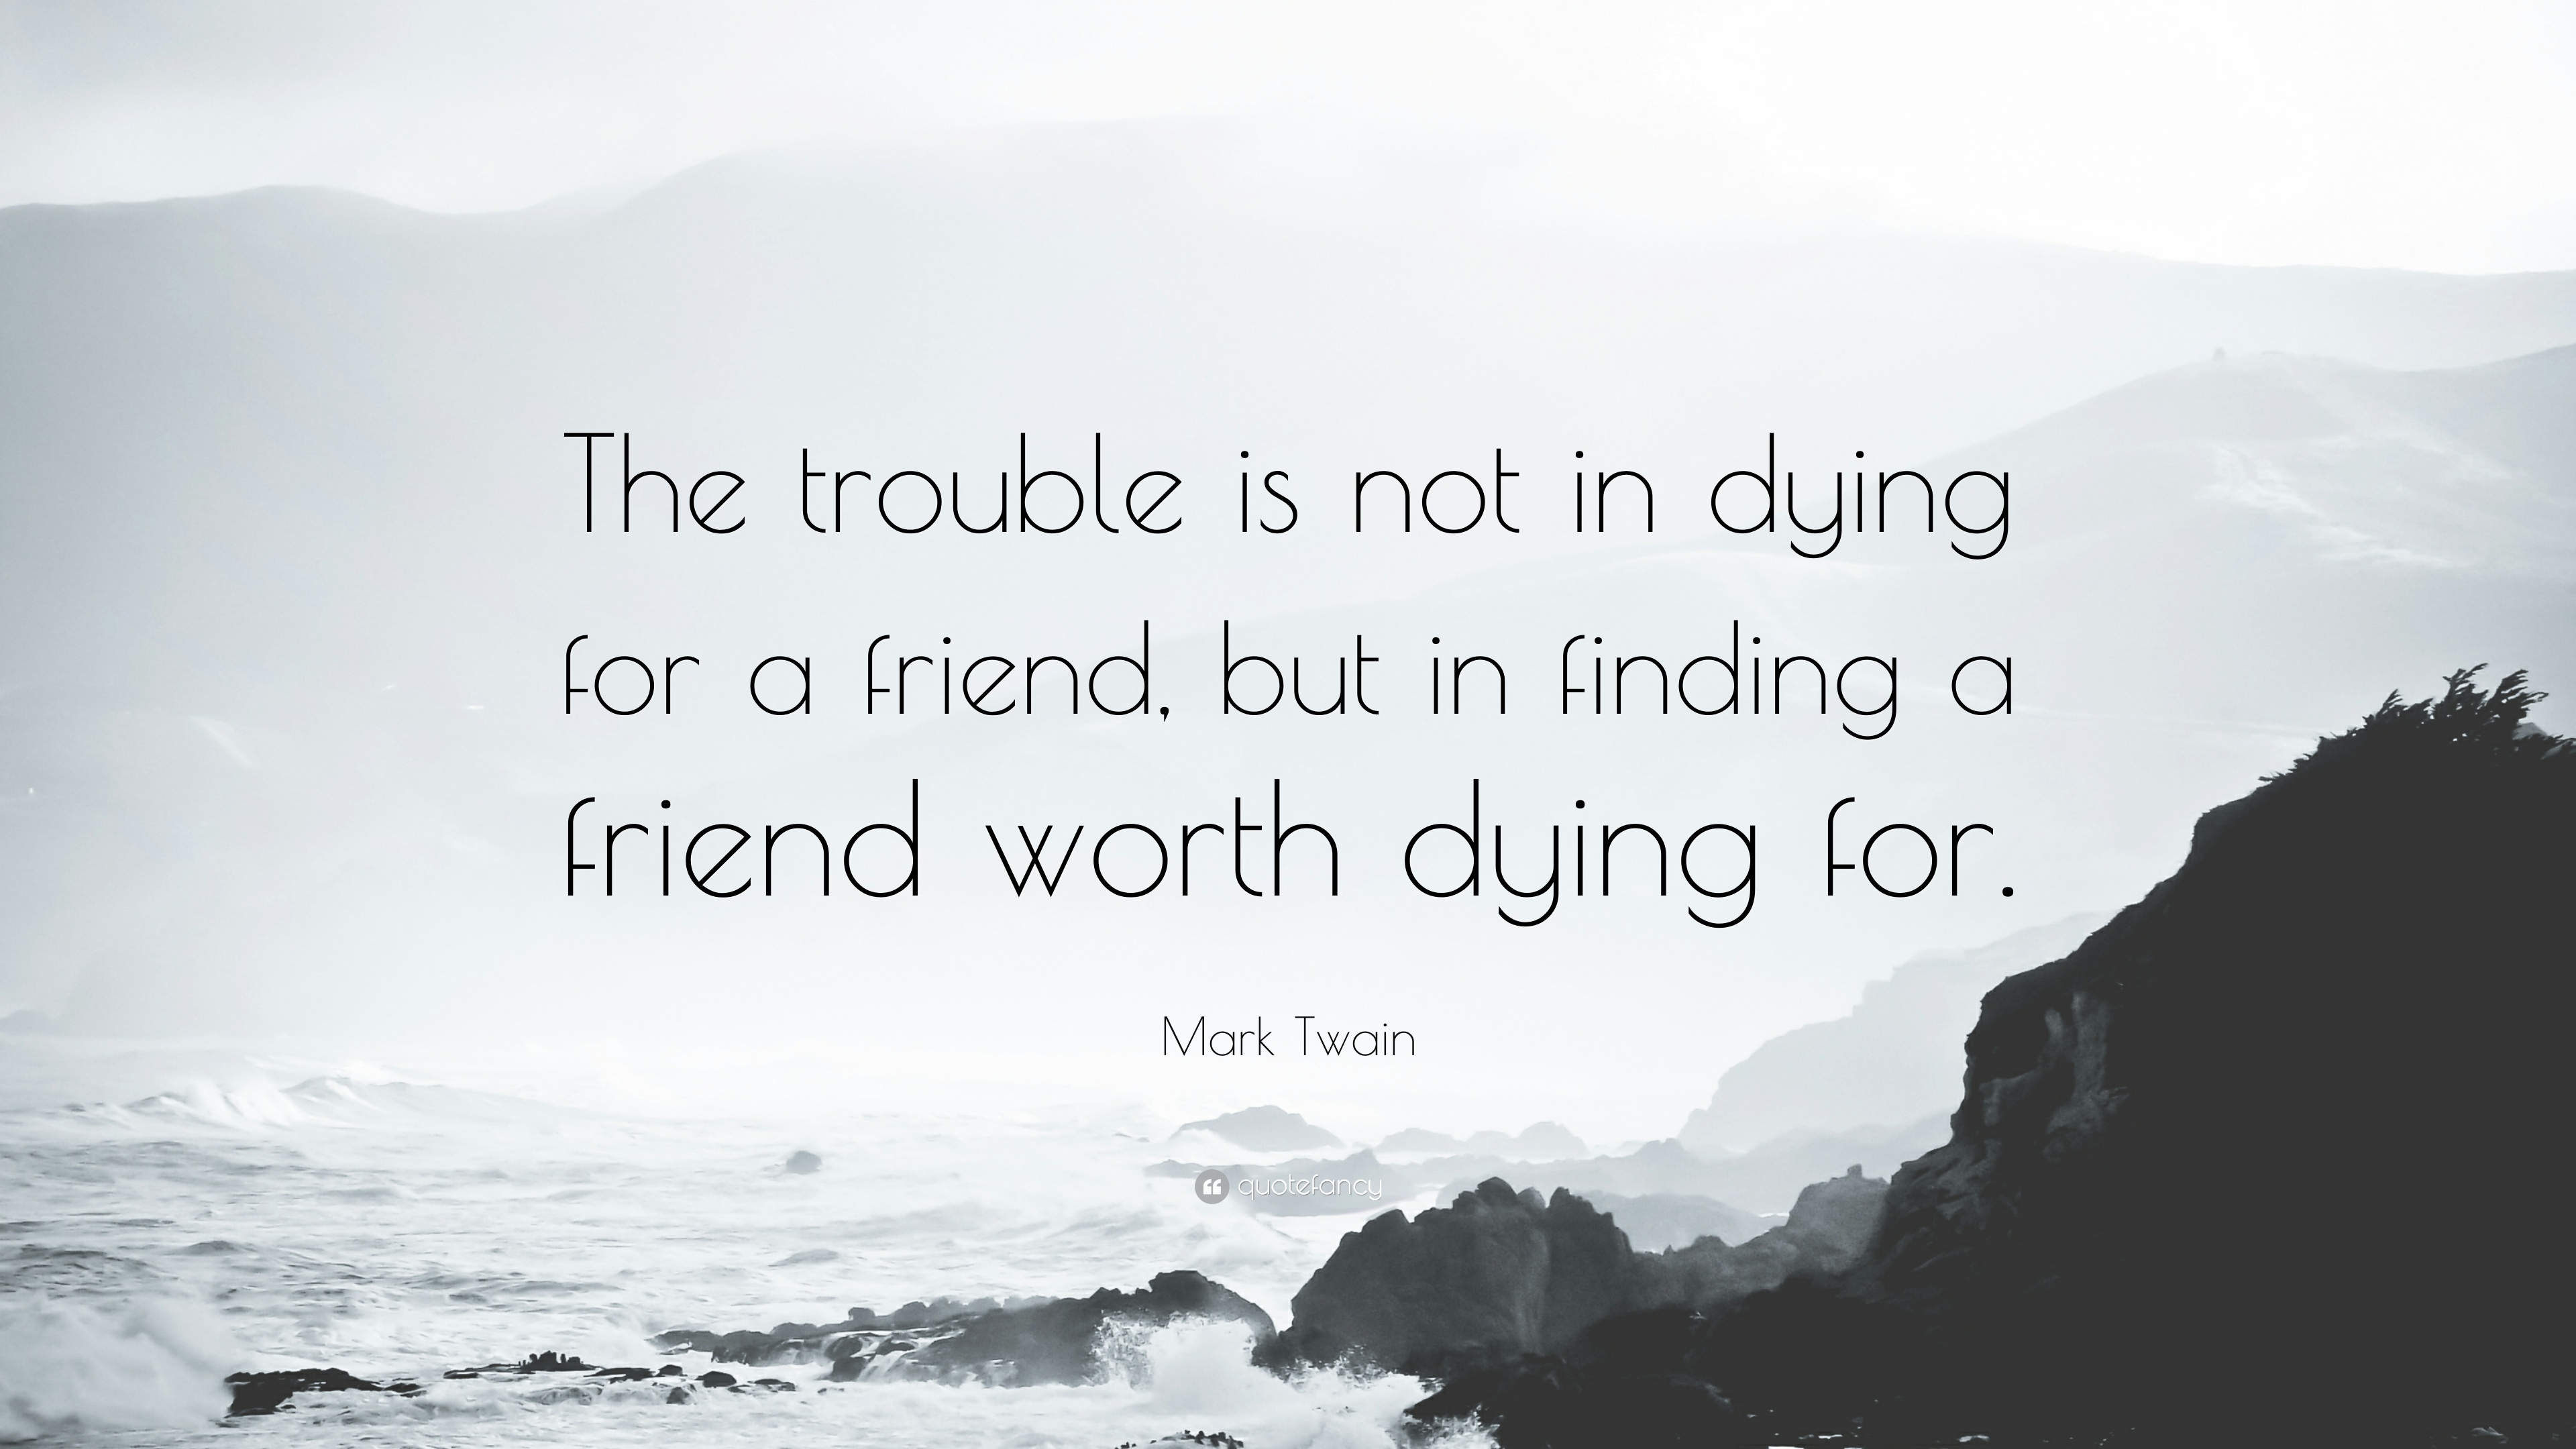 Quotes About Friendship With Images Friendship Quotes 21 Wallpapers  Quotefancy